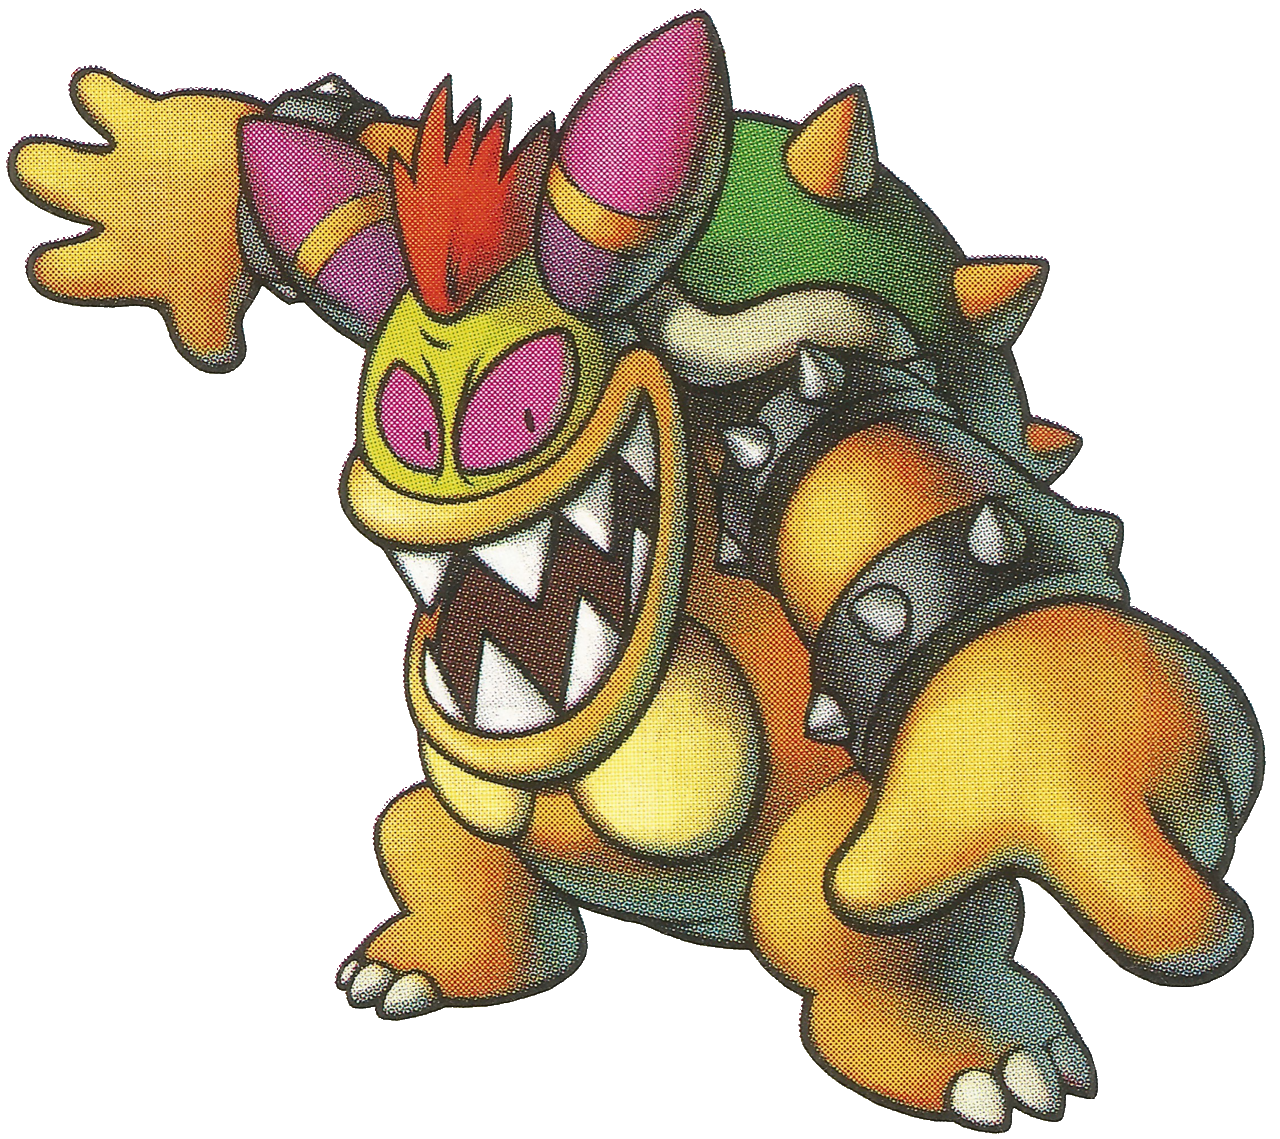 Bowletta ゲラクッパ Gerakuppa Is The Fusion Of Bowser And